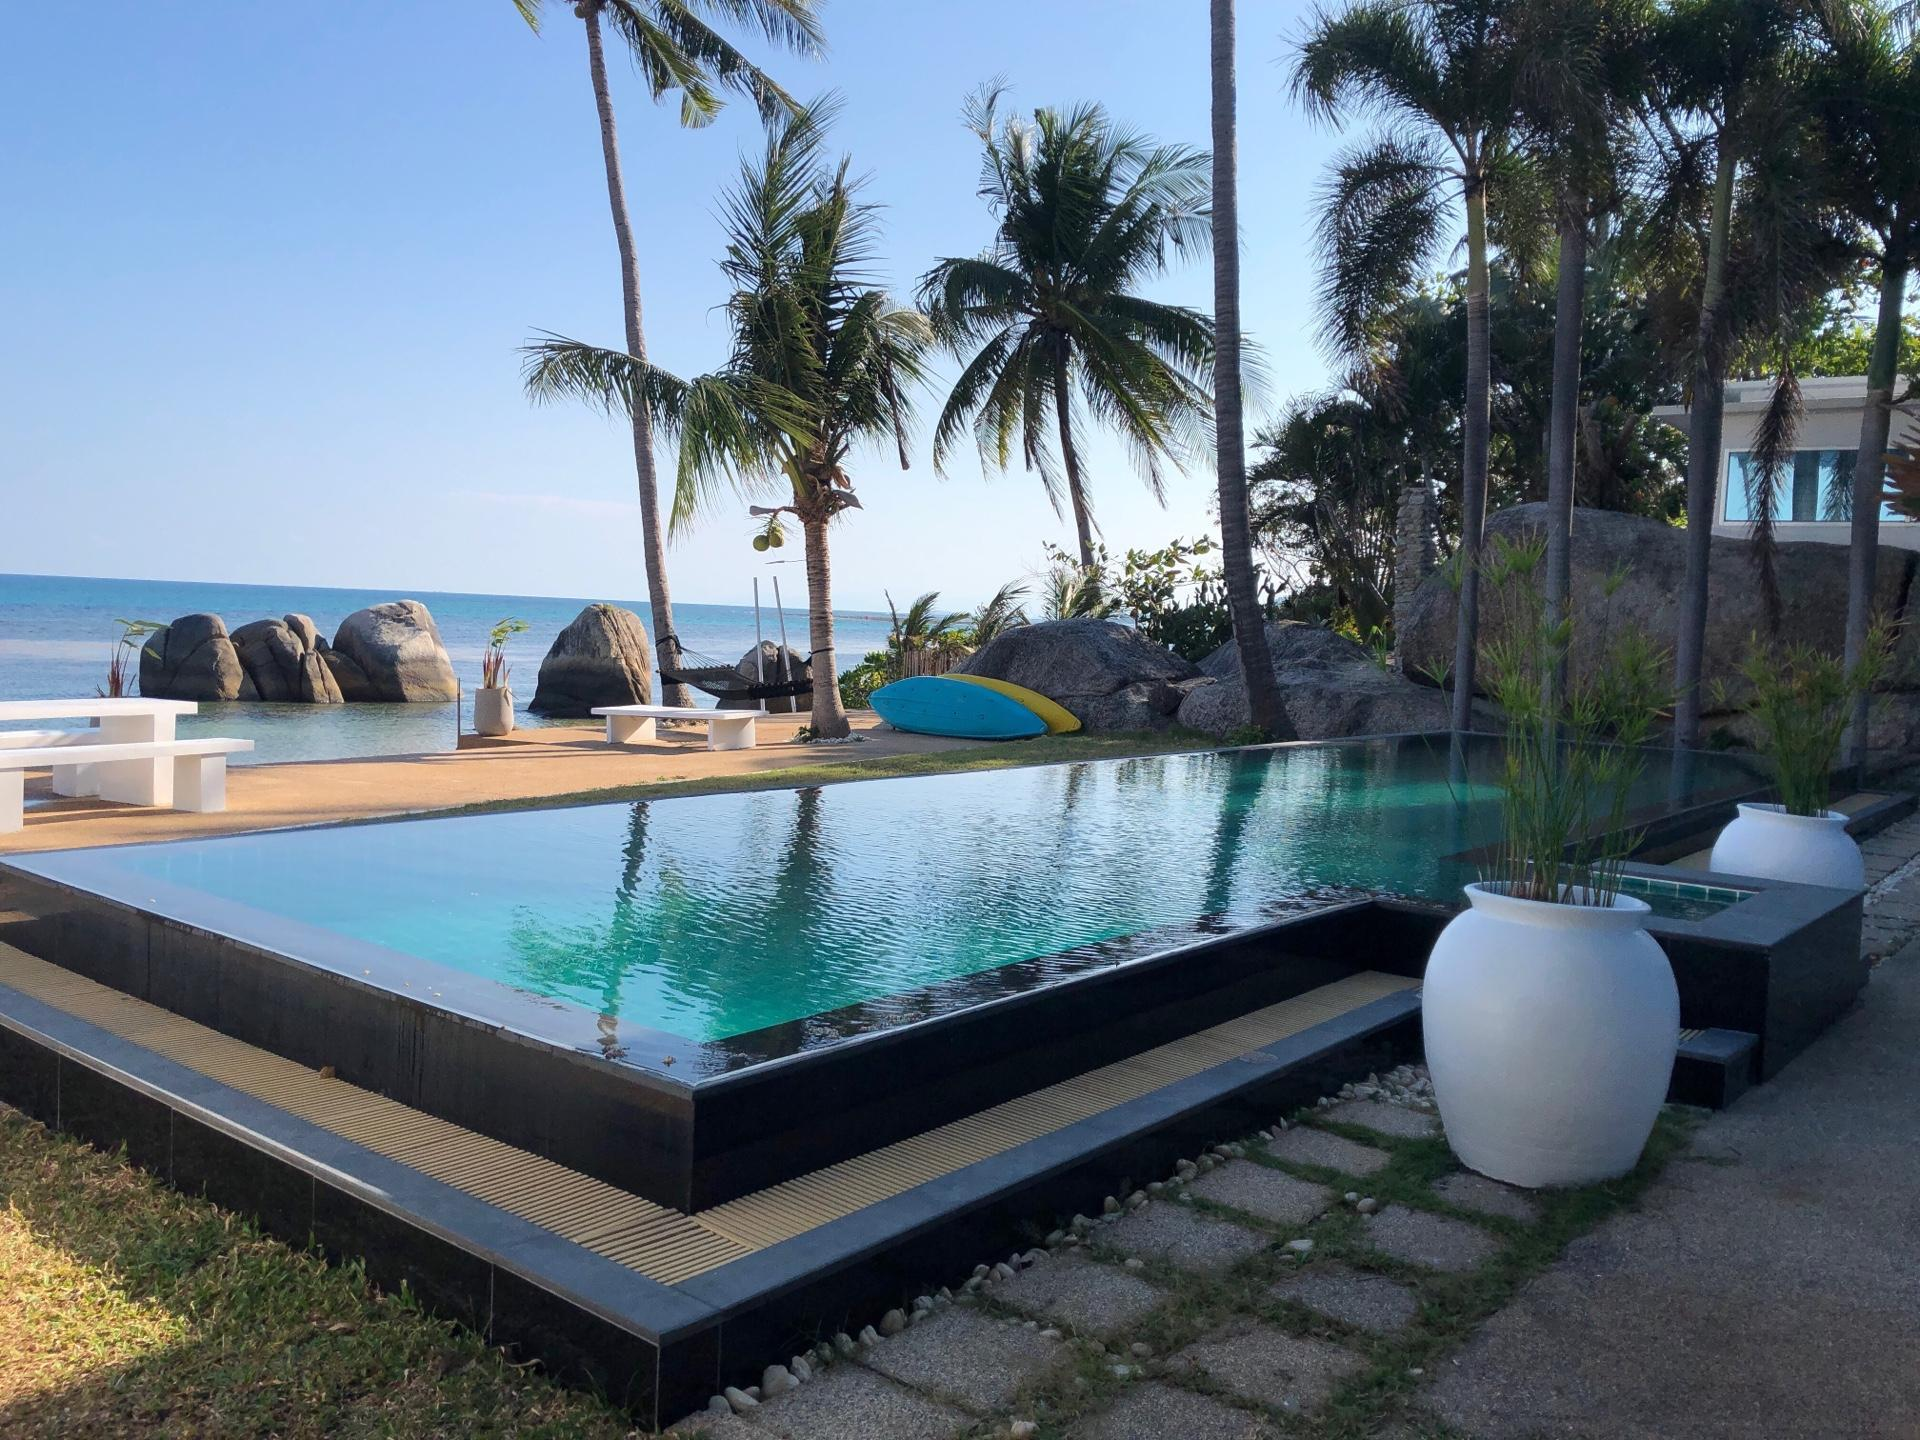 Nice And Quiet Place  The Rock @ Koh Samui